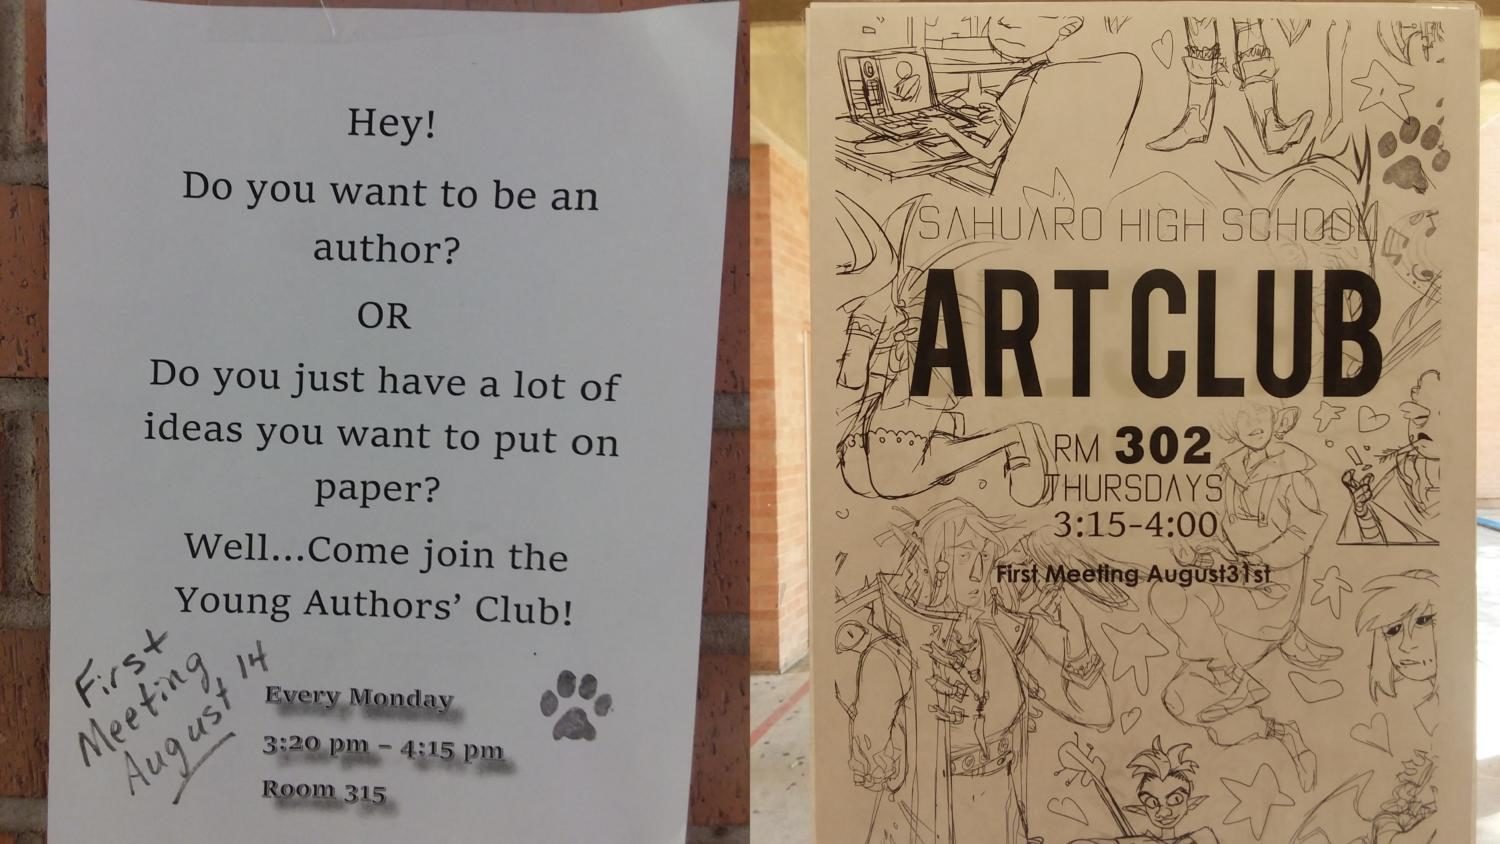 Go Clubbing! Get Involved With Sahuaro Clubs